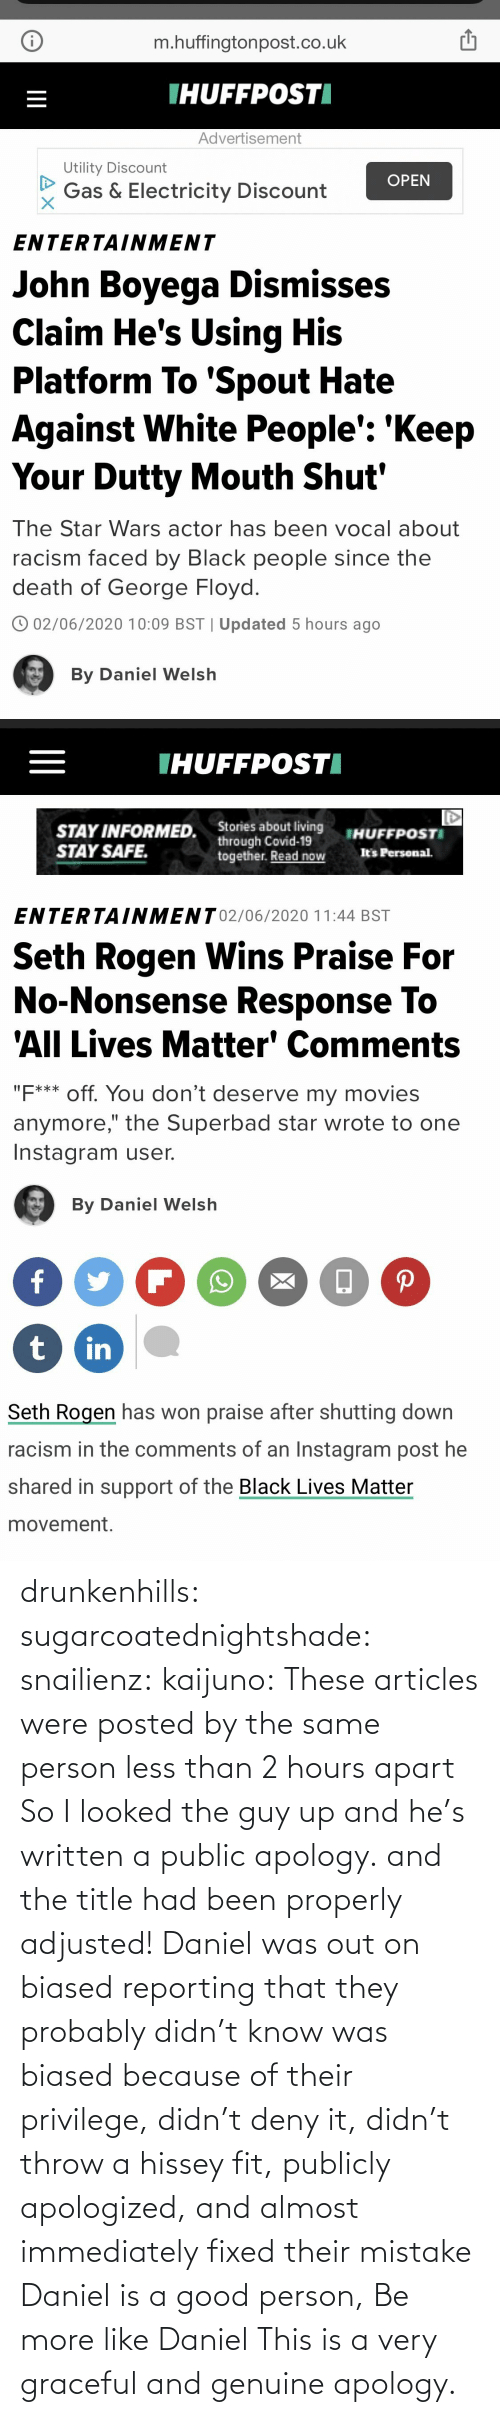 data: drunkenhills: sugarcoatednightshade:   snailienz:  kaijuno: These articles were posted by the same person less than 2 hours apart    So I looked the guy up and he's written a public apology. and the title had been properly adjusted!    Daniel was out on biased reporting that they probably didn't know was biased because of their privilege, didn't deny it, didn't throw a hissey fit, publicly apologized, and almost immediately fixed their mistake Daniel is a good person, Be more like Daniel     This is a very graceful and genuine apology.